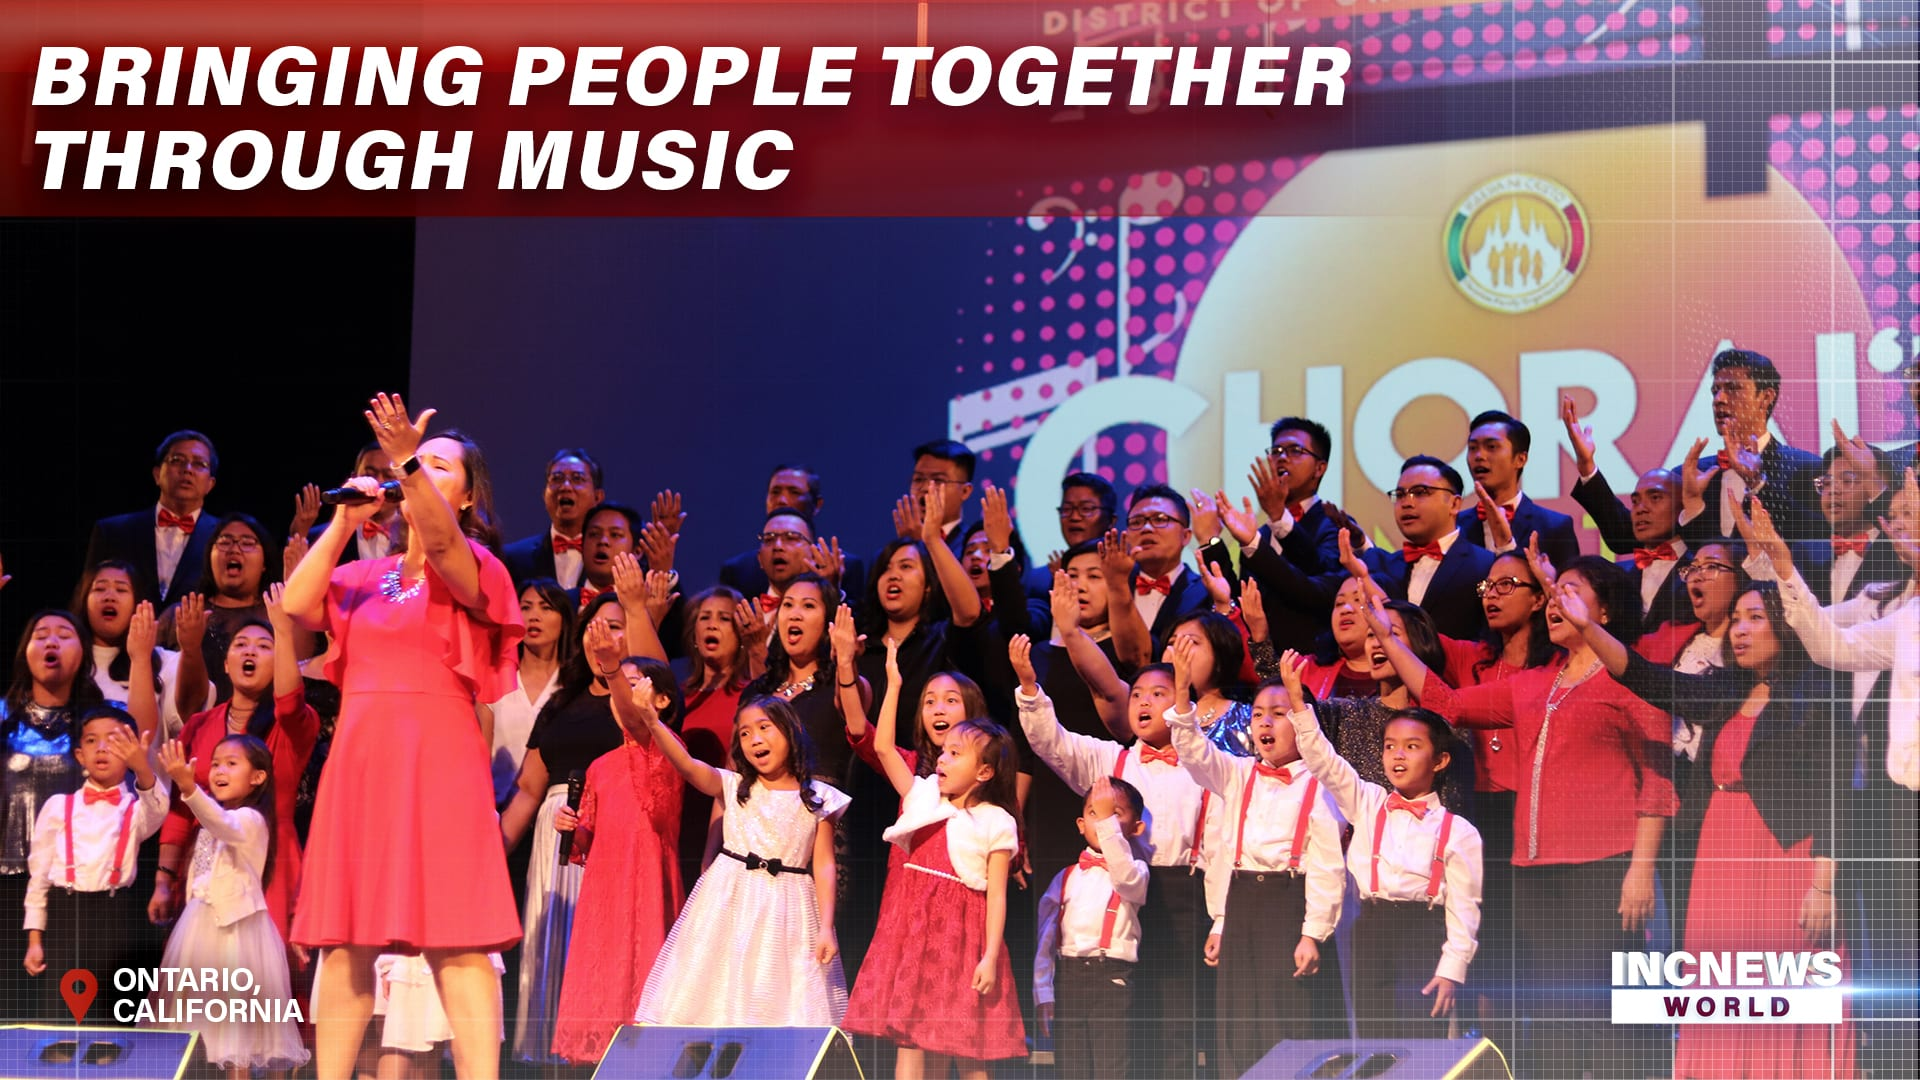 Bringing People Together Through Music